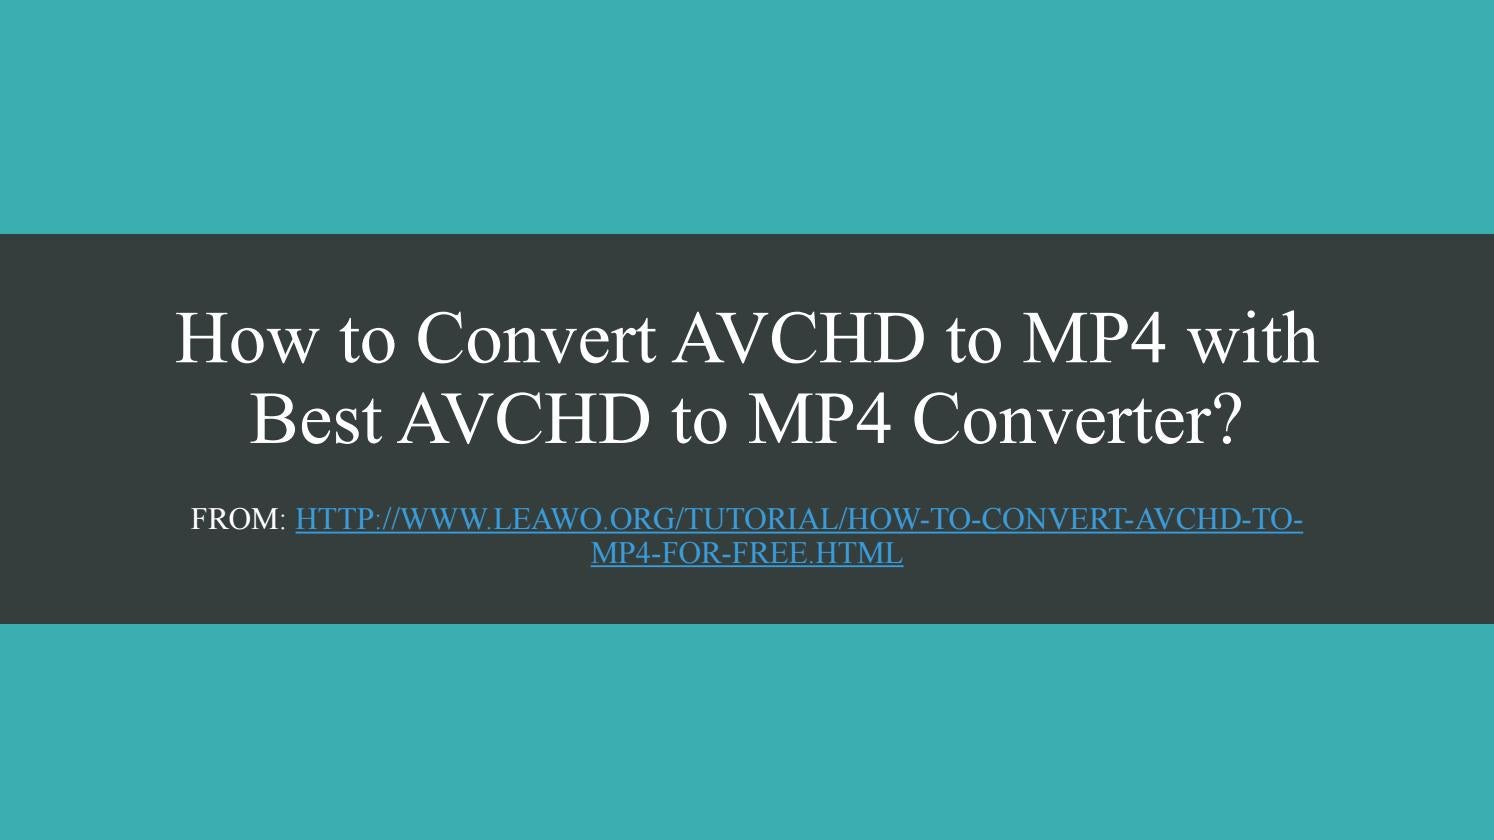 How to convert avchd to mp4 with best avchd to mp4 converter